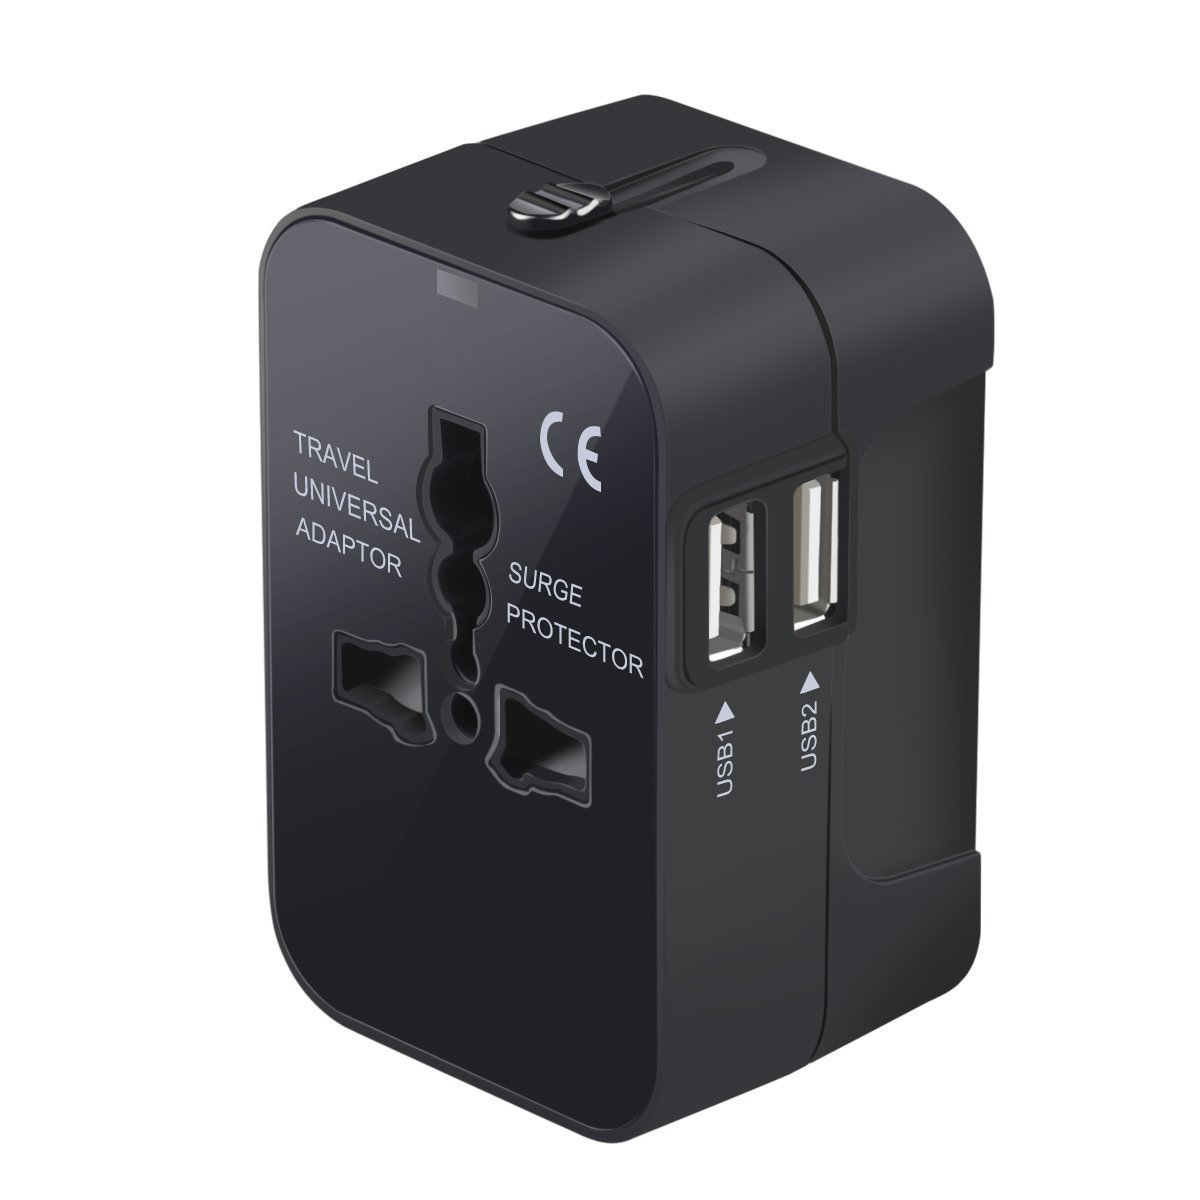 Travel Adapter, Universal Power Adapter Worldwide Wall AC Power Plug with Dual USB Charging Ports for USA EU UK AUS Mobile TopM8 TM8-C1